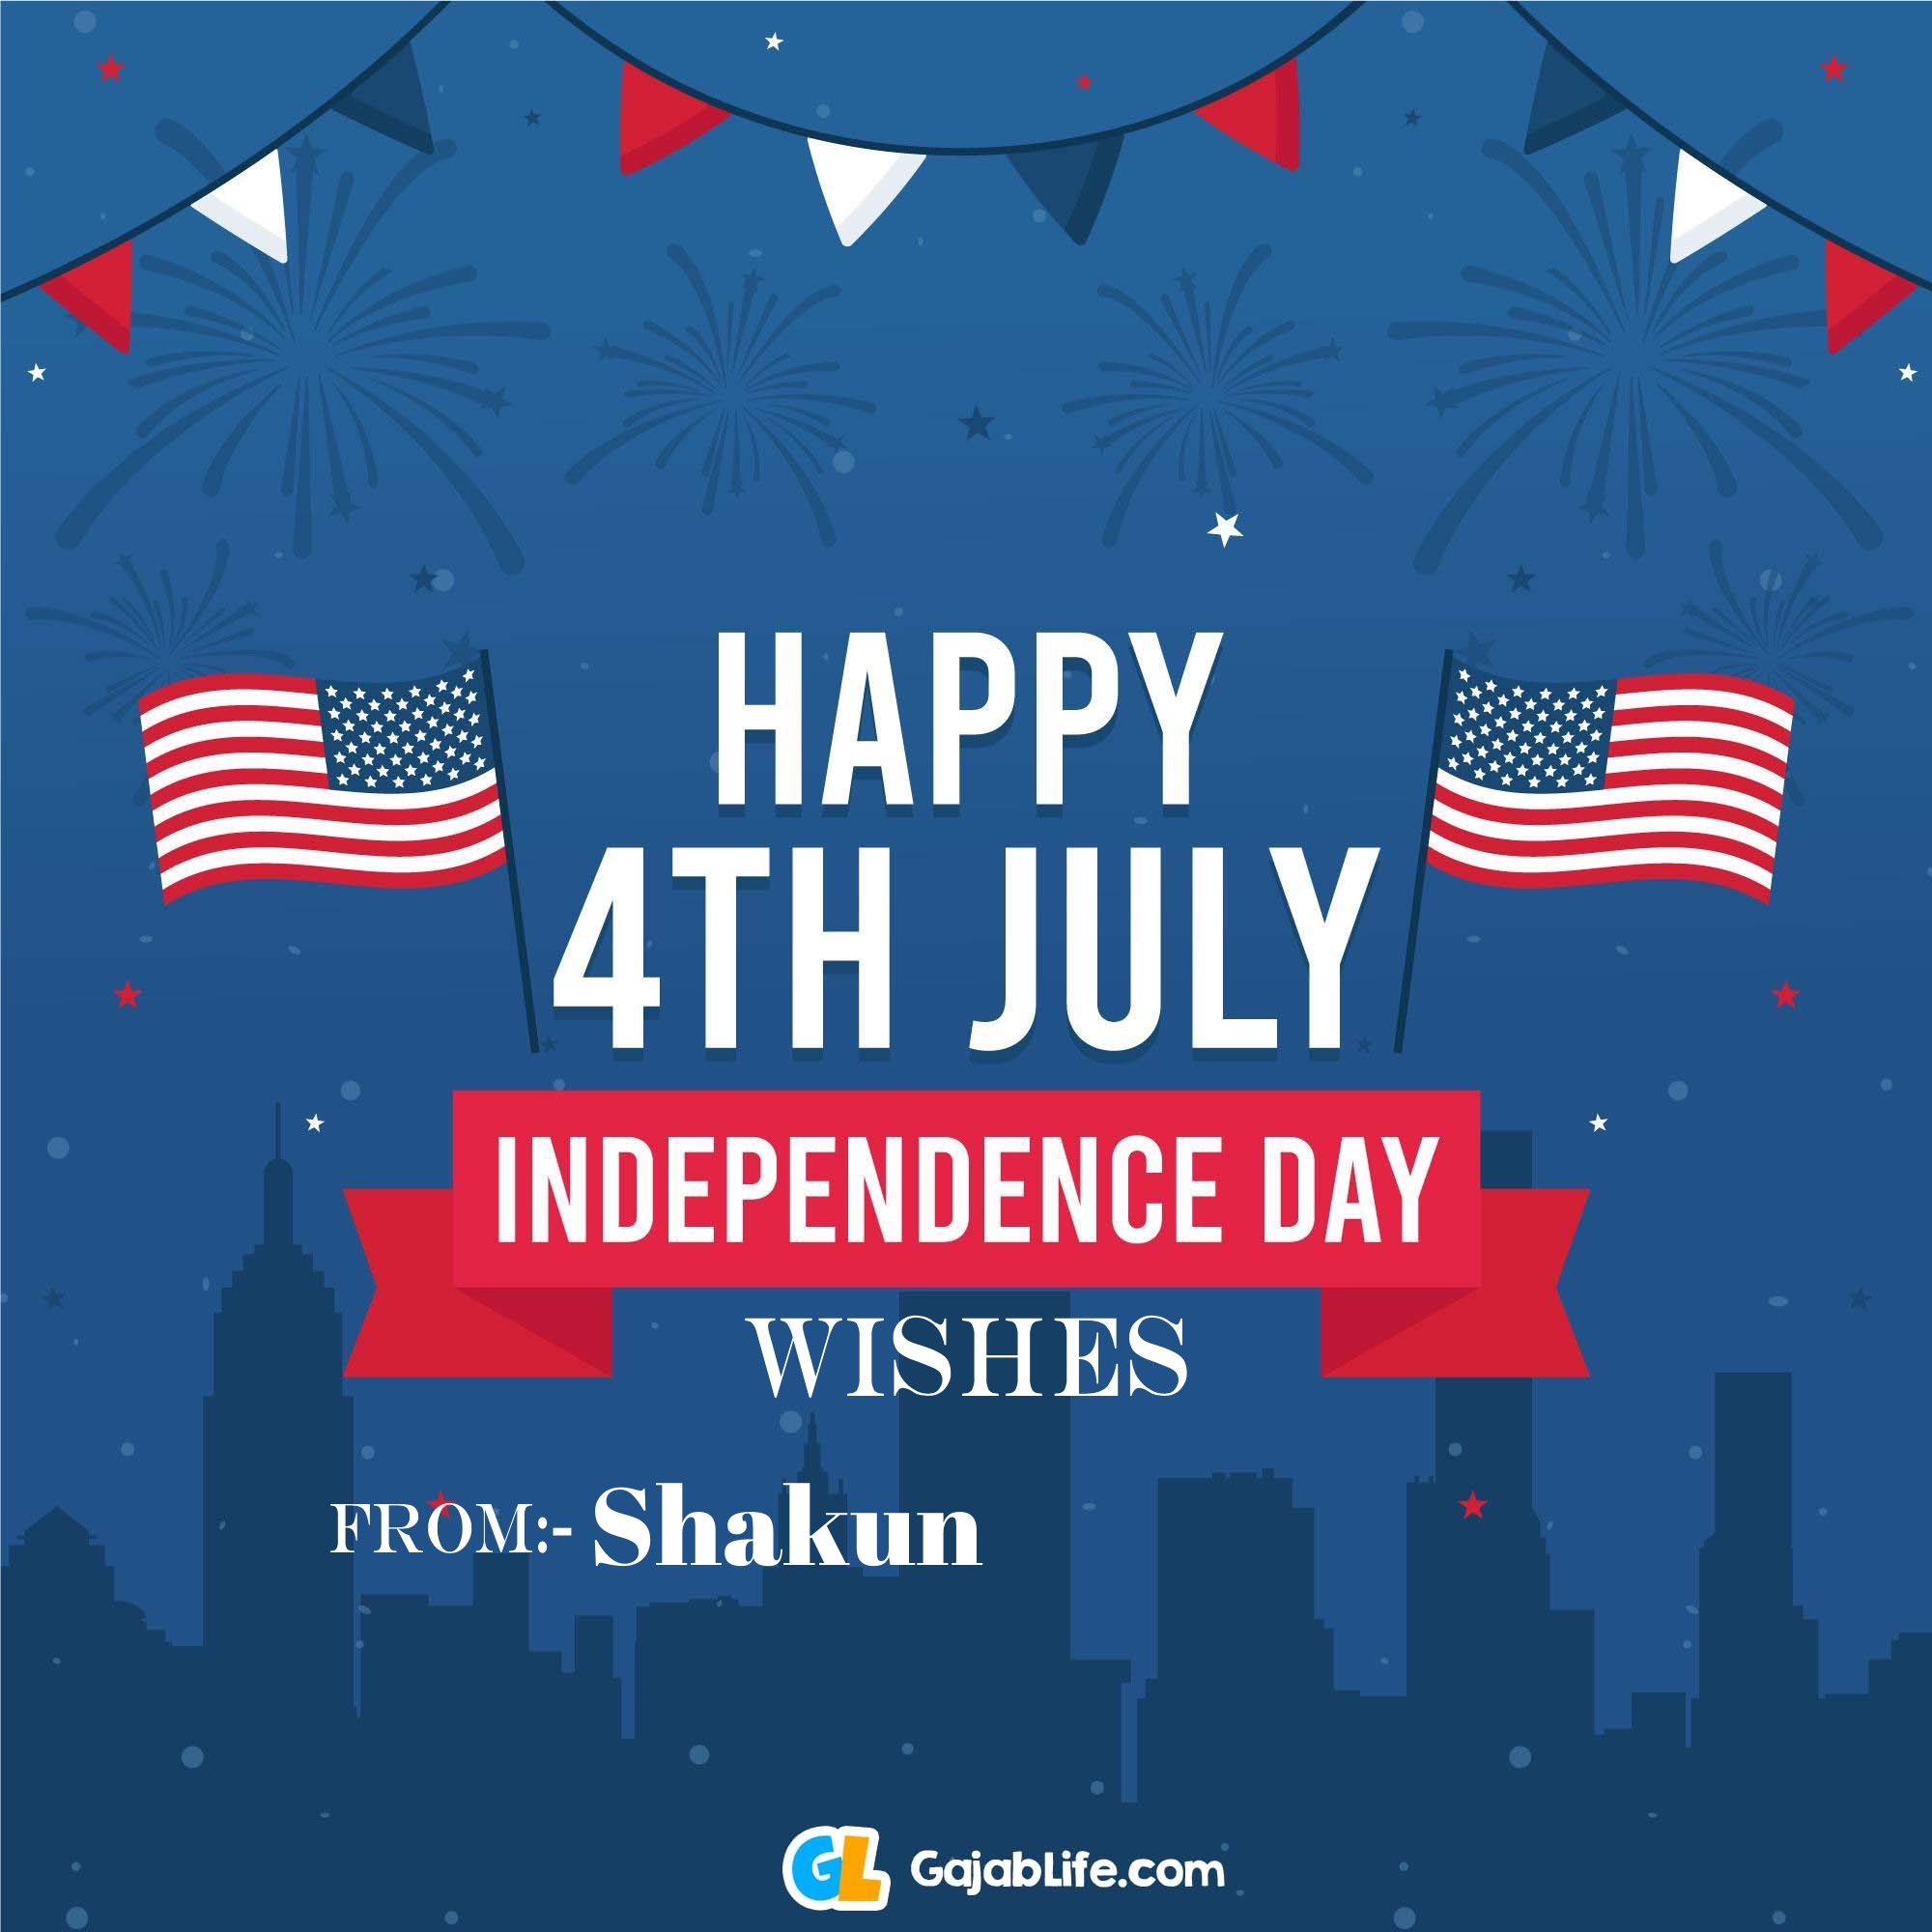 Shakun happy independence day united states of america images